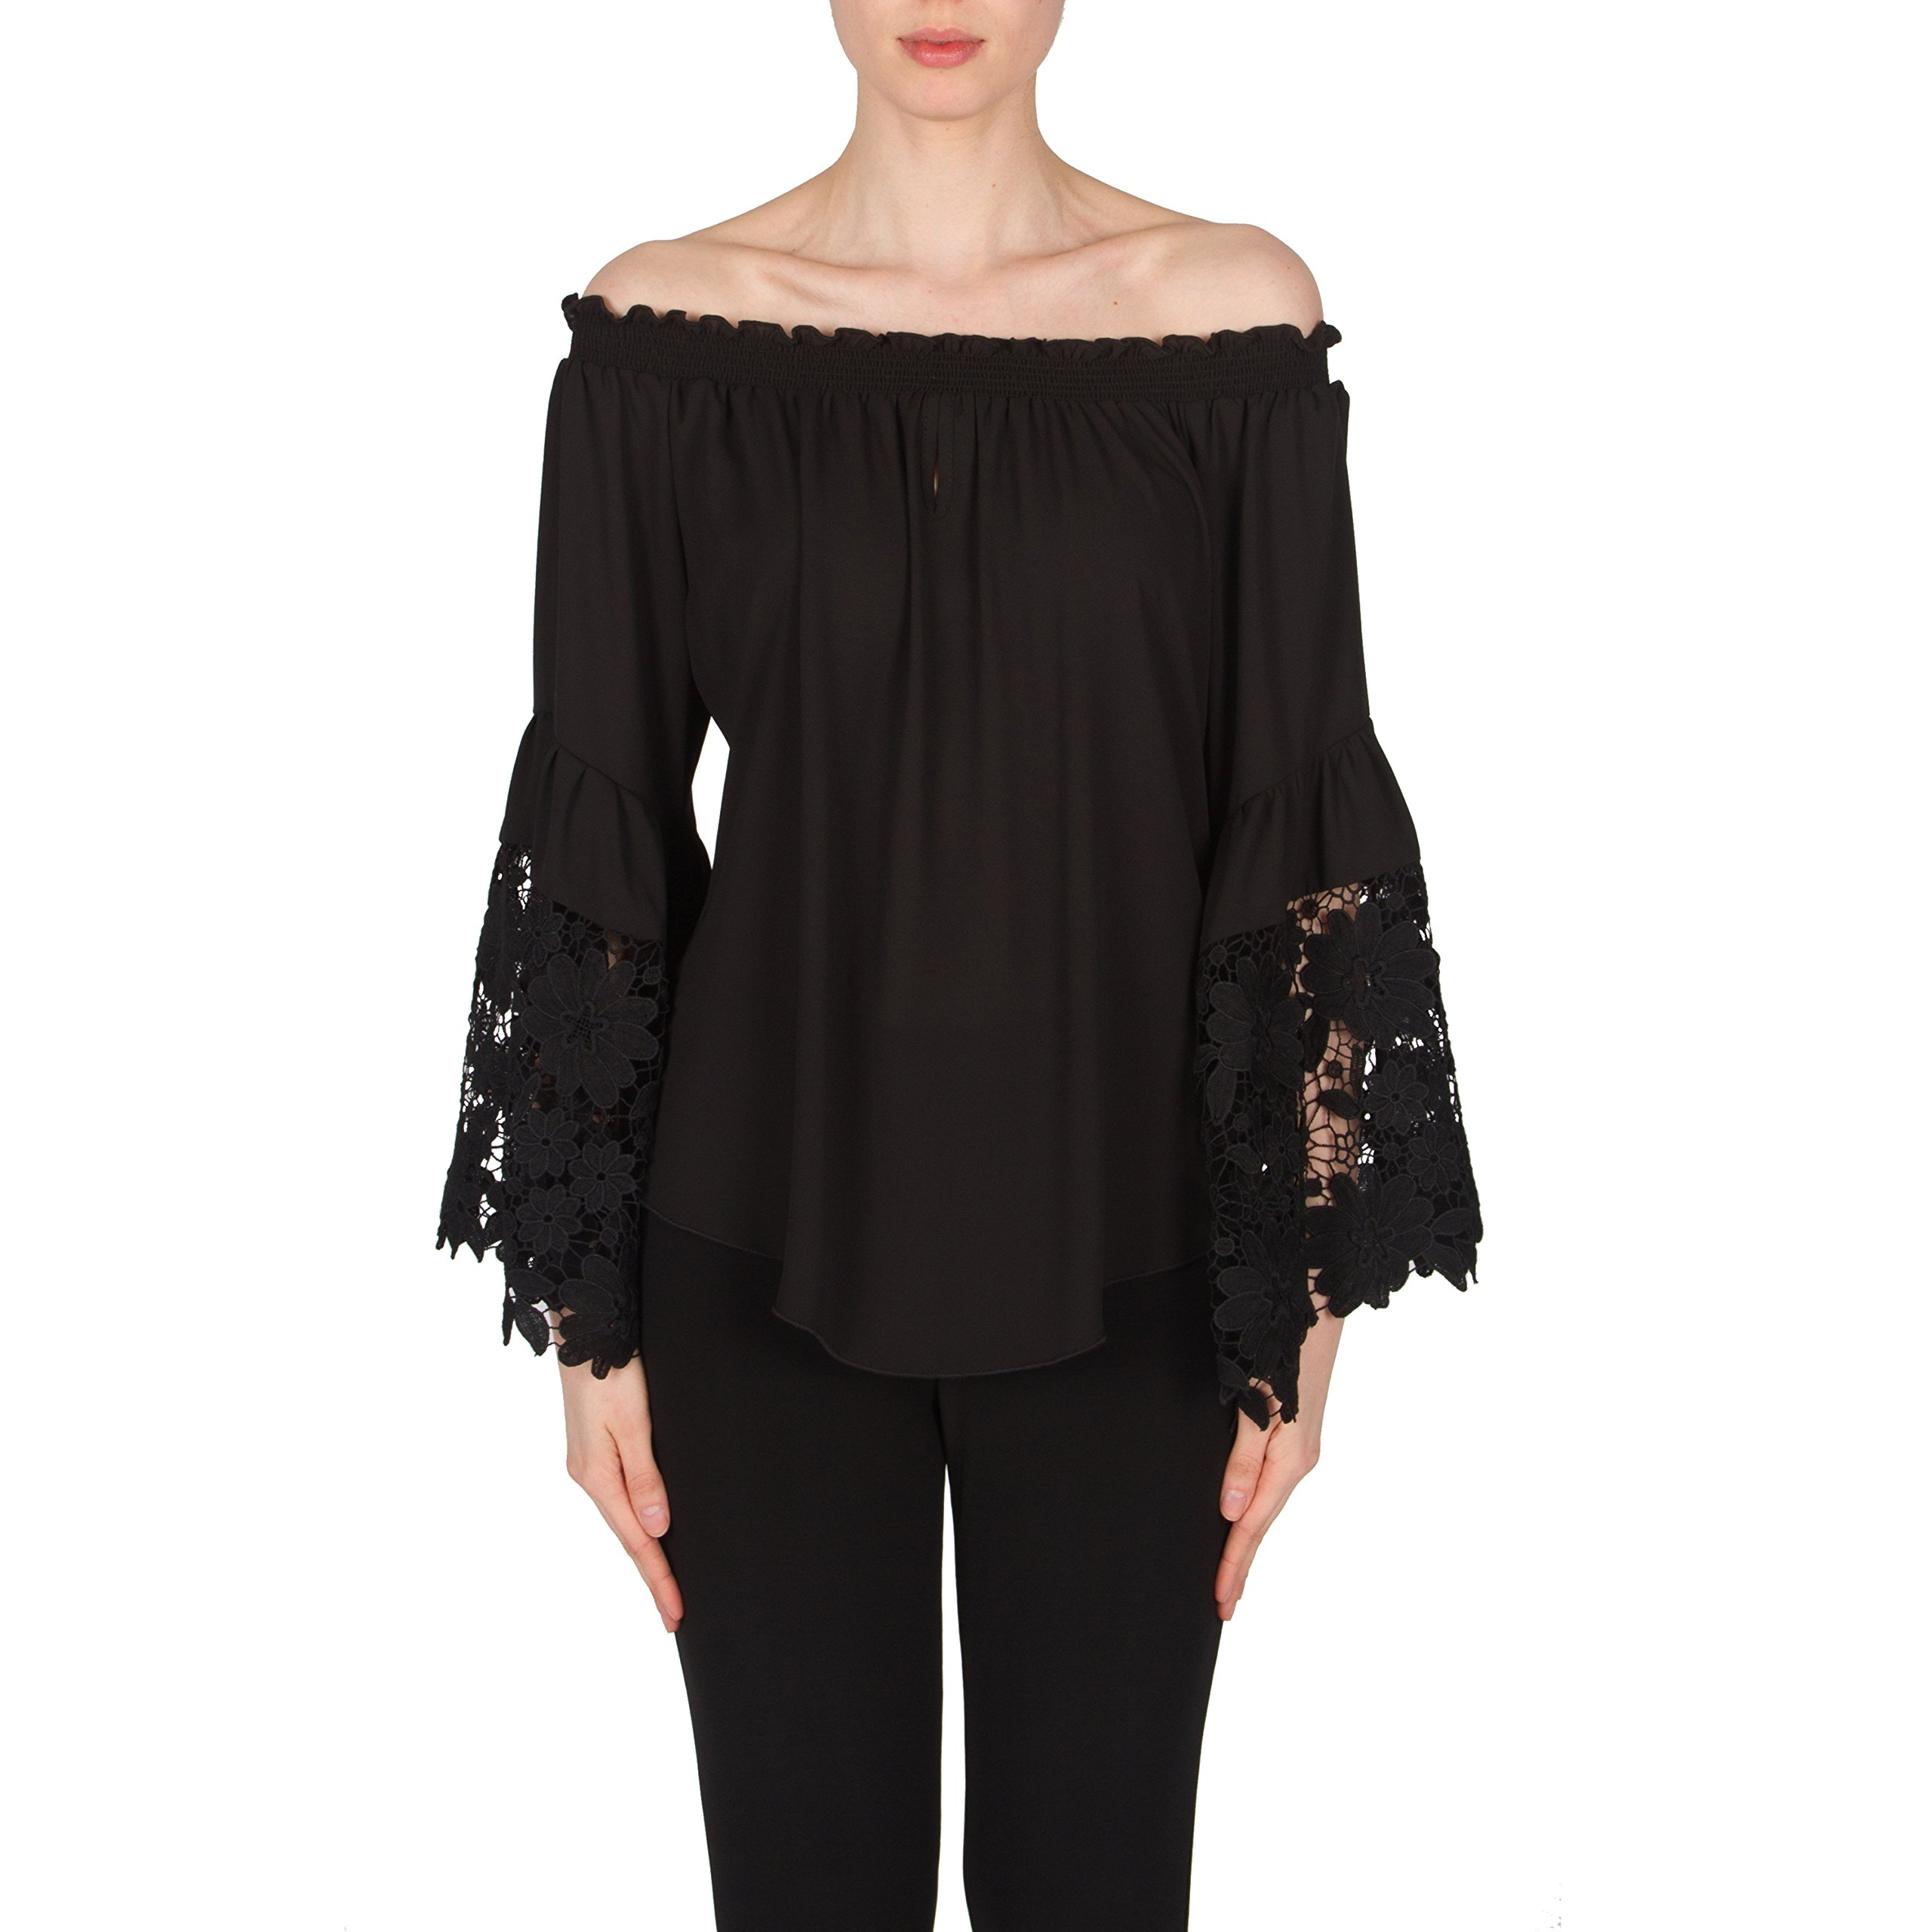 Joseph Ribkoff Black On/Off Shoulder Lace Bell Sleeve Top Style 173286 - Size 16 by Joseph Ribkoff